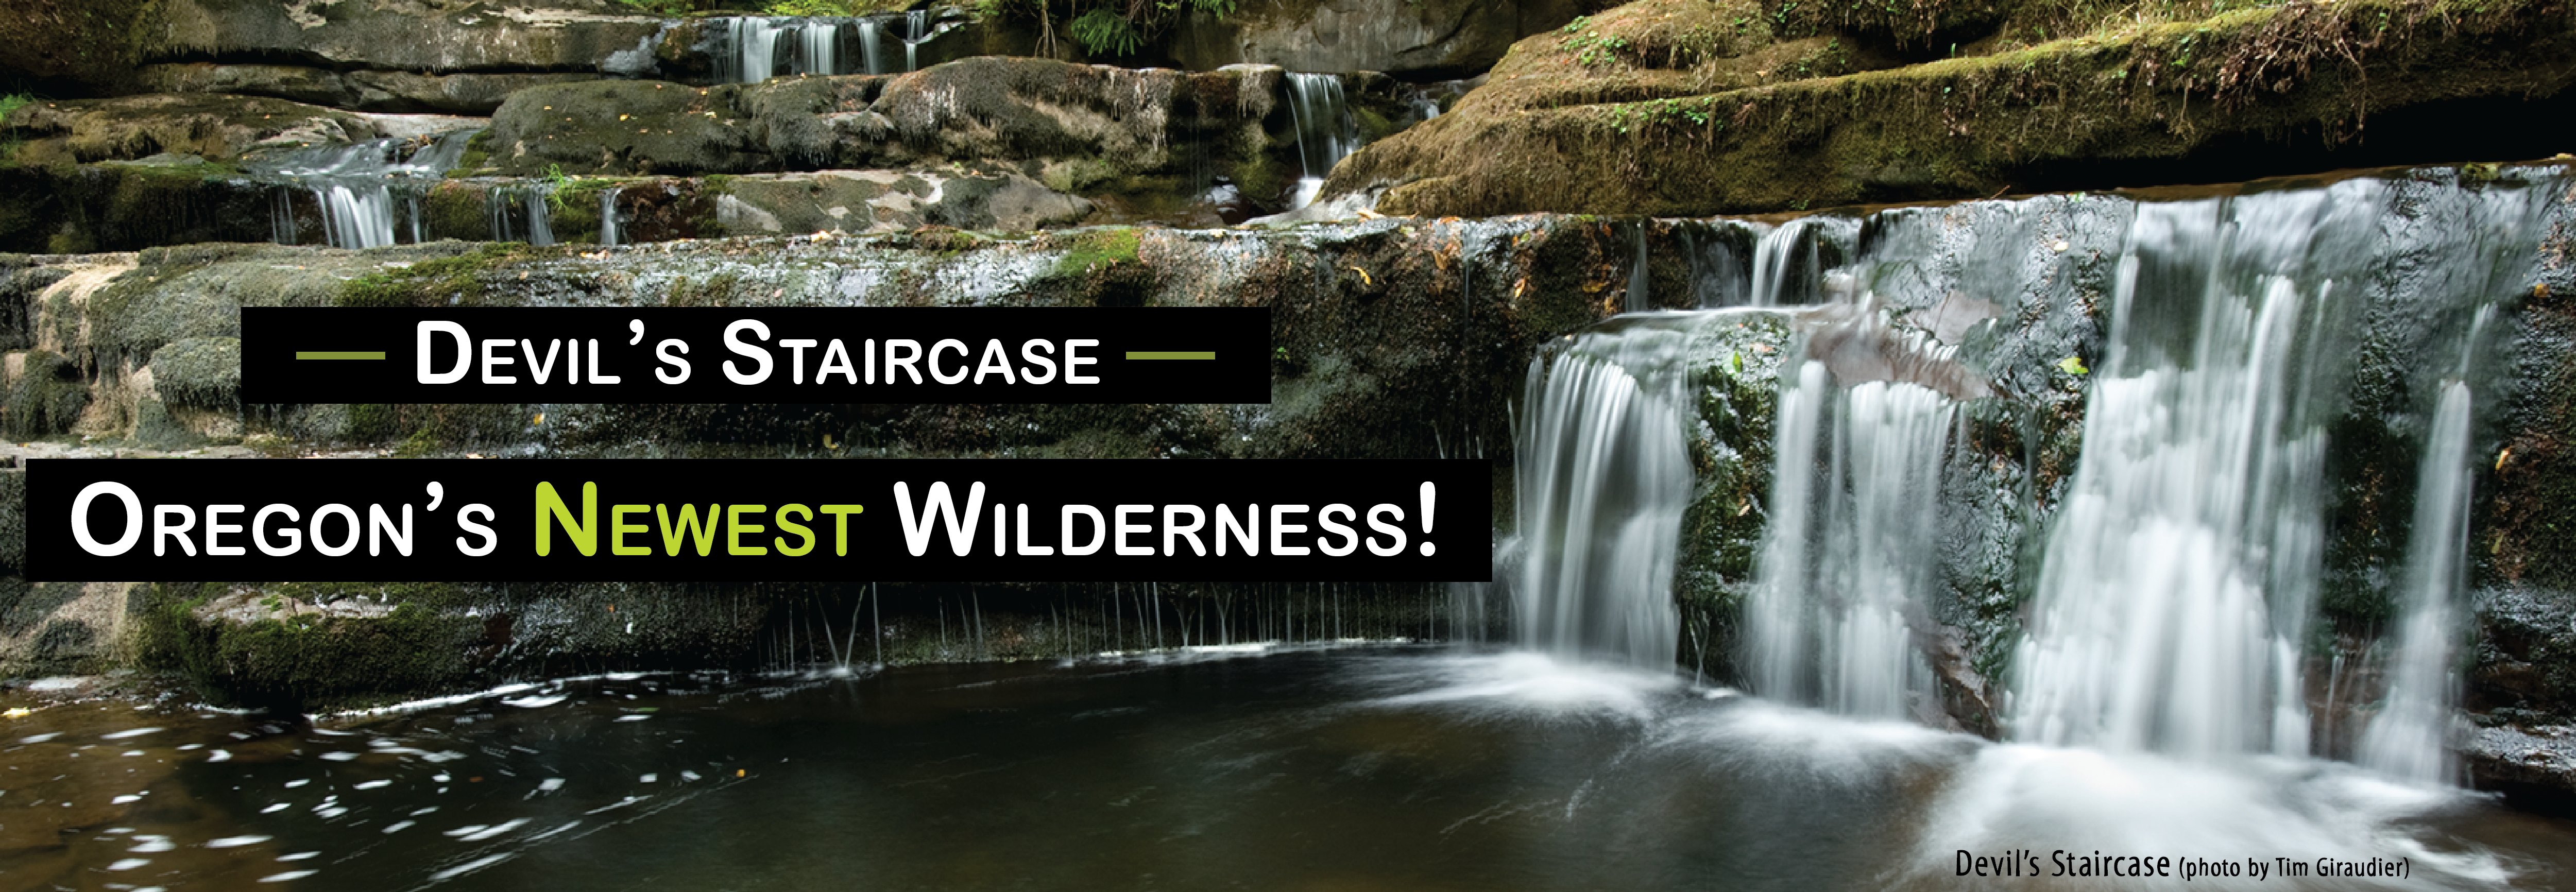 Visit the Devil's Staircase Wilderness Area! — July 13, 2019